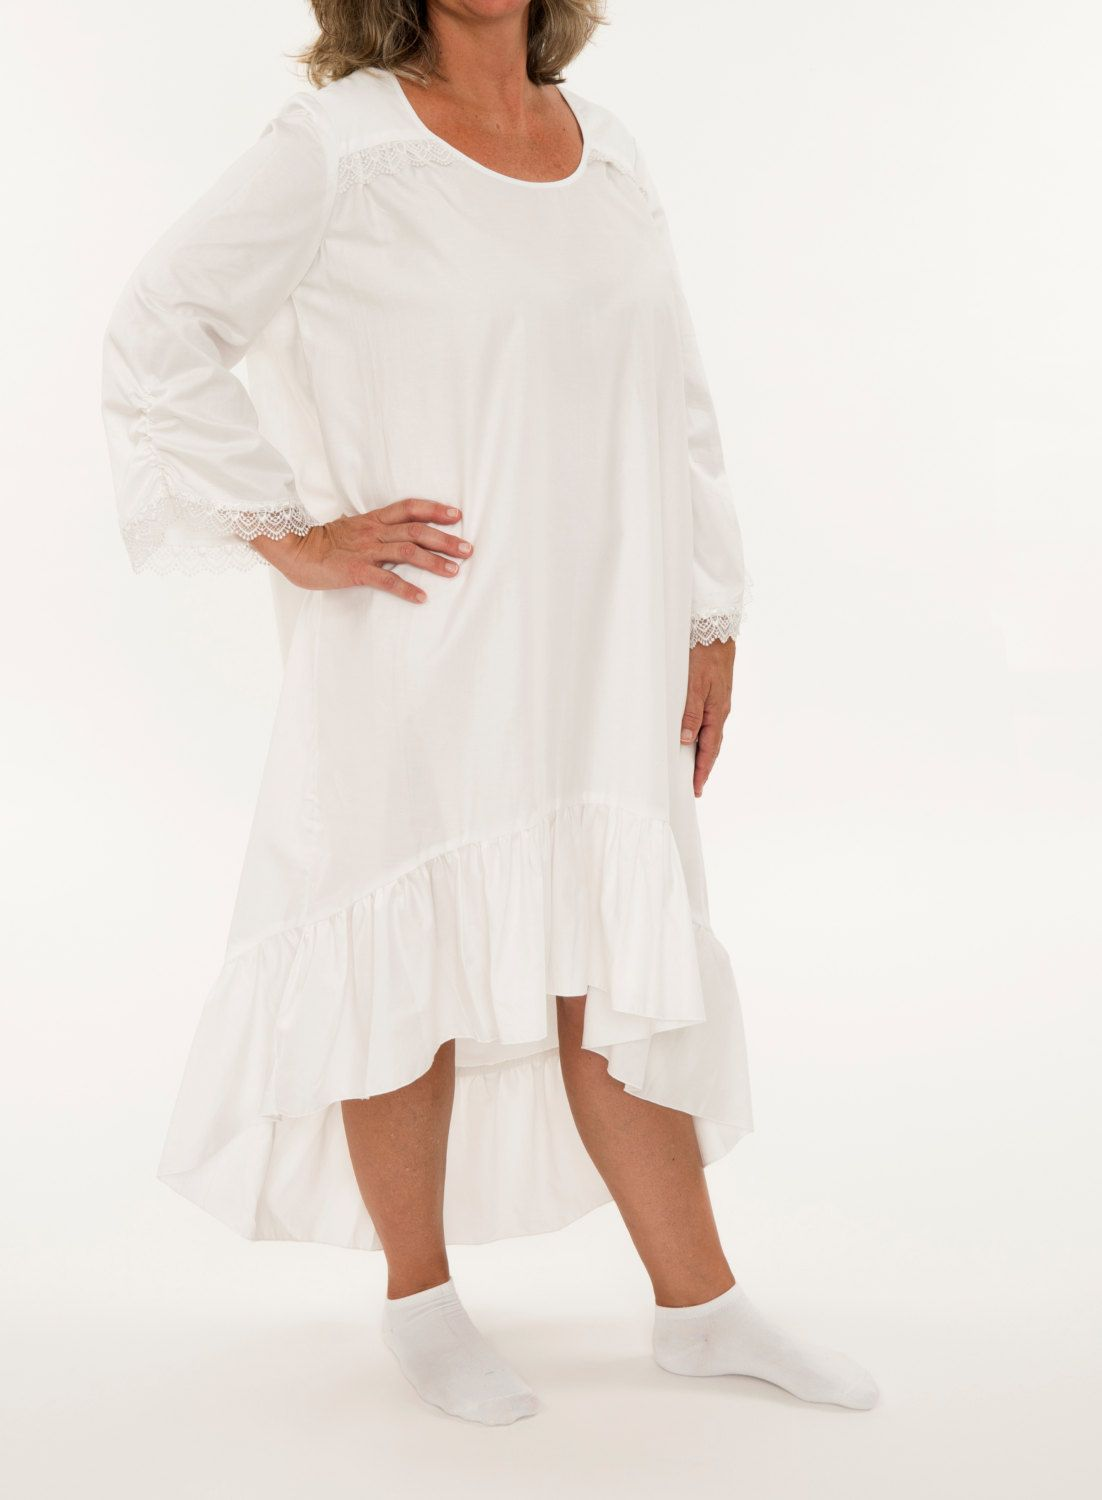 7a92f2dff0 Ladies Pure White Cotton Nightgown - Women s Hi-Low Pajama Dress - Light  Sleepwear For Her Misses Sleep Night Dress Feminine Prairie Classic by  PajamasNmore ...